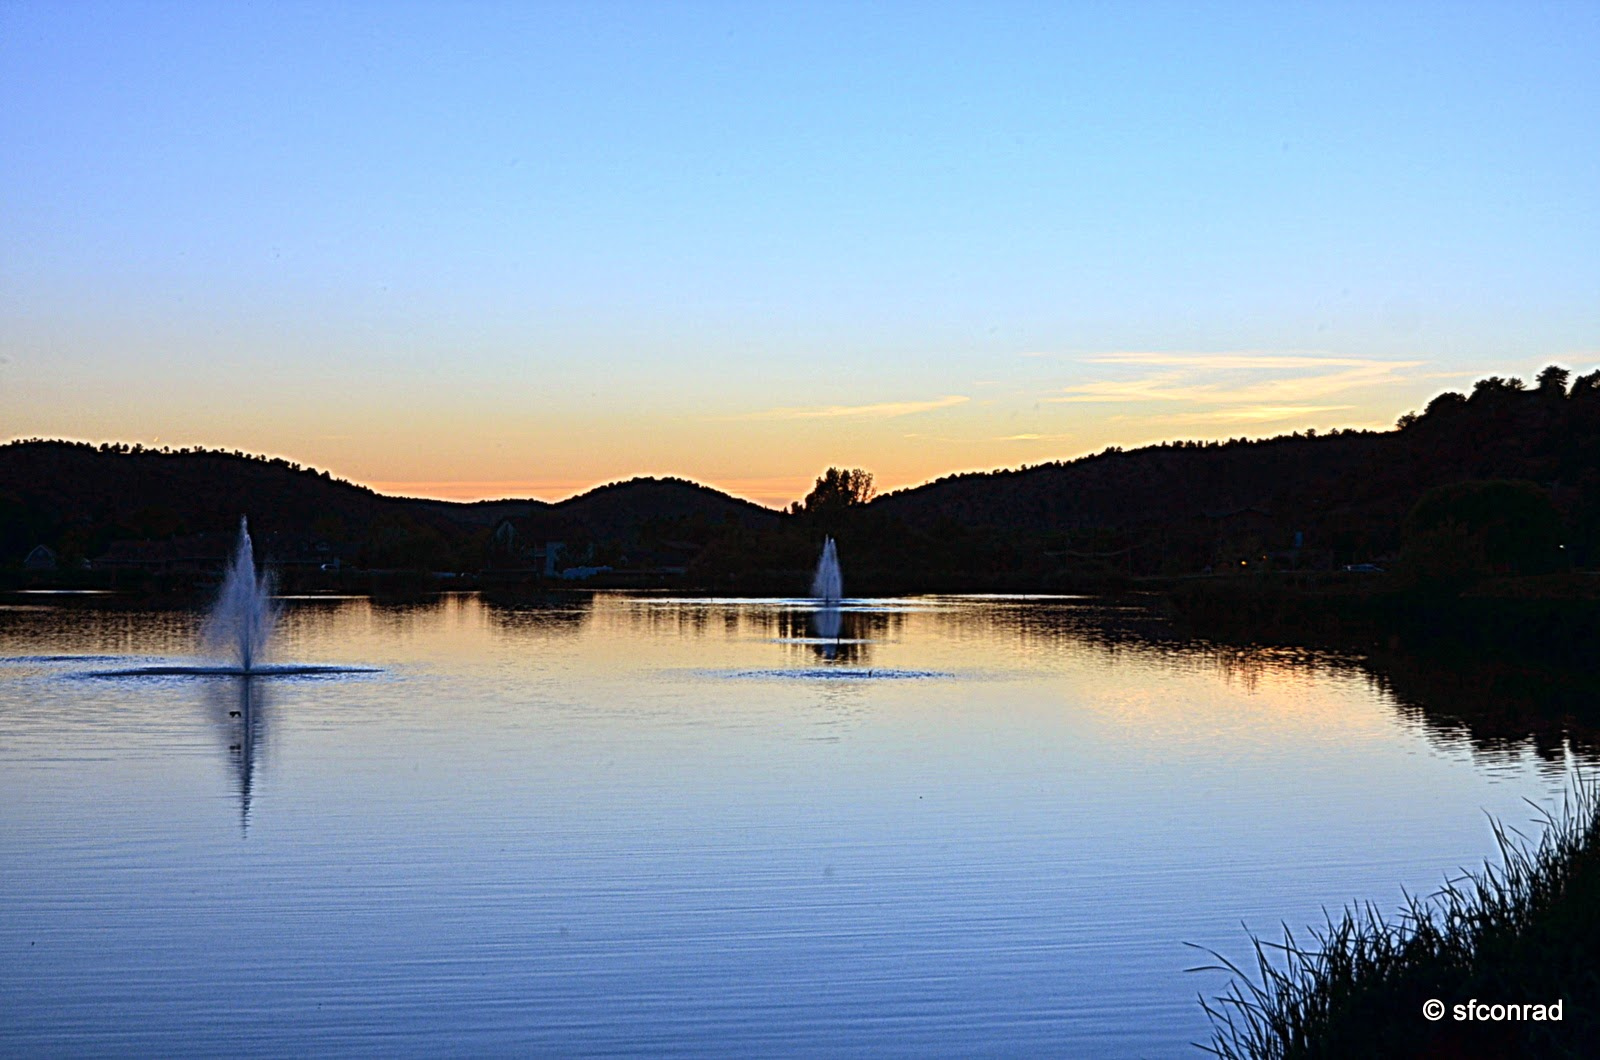 PUPPY PATHS - RVing Full-Time: Sunset At Green Valley Lake ...